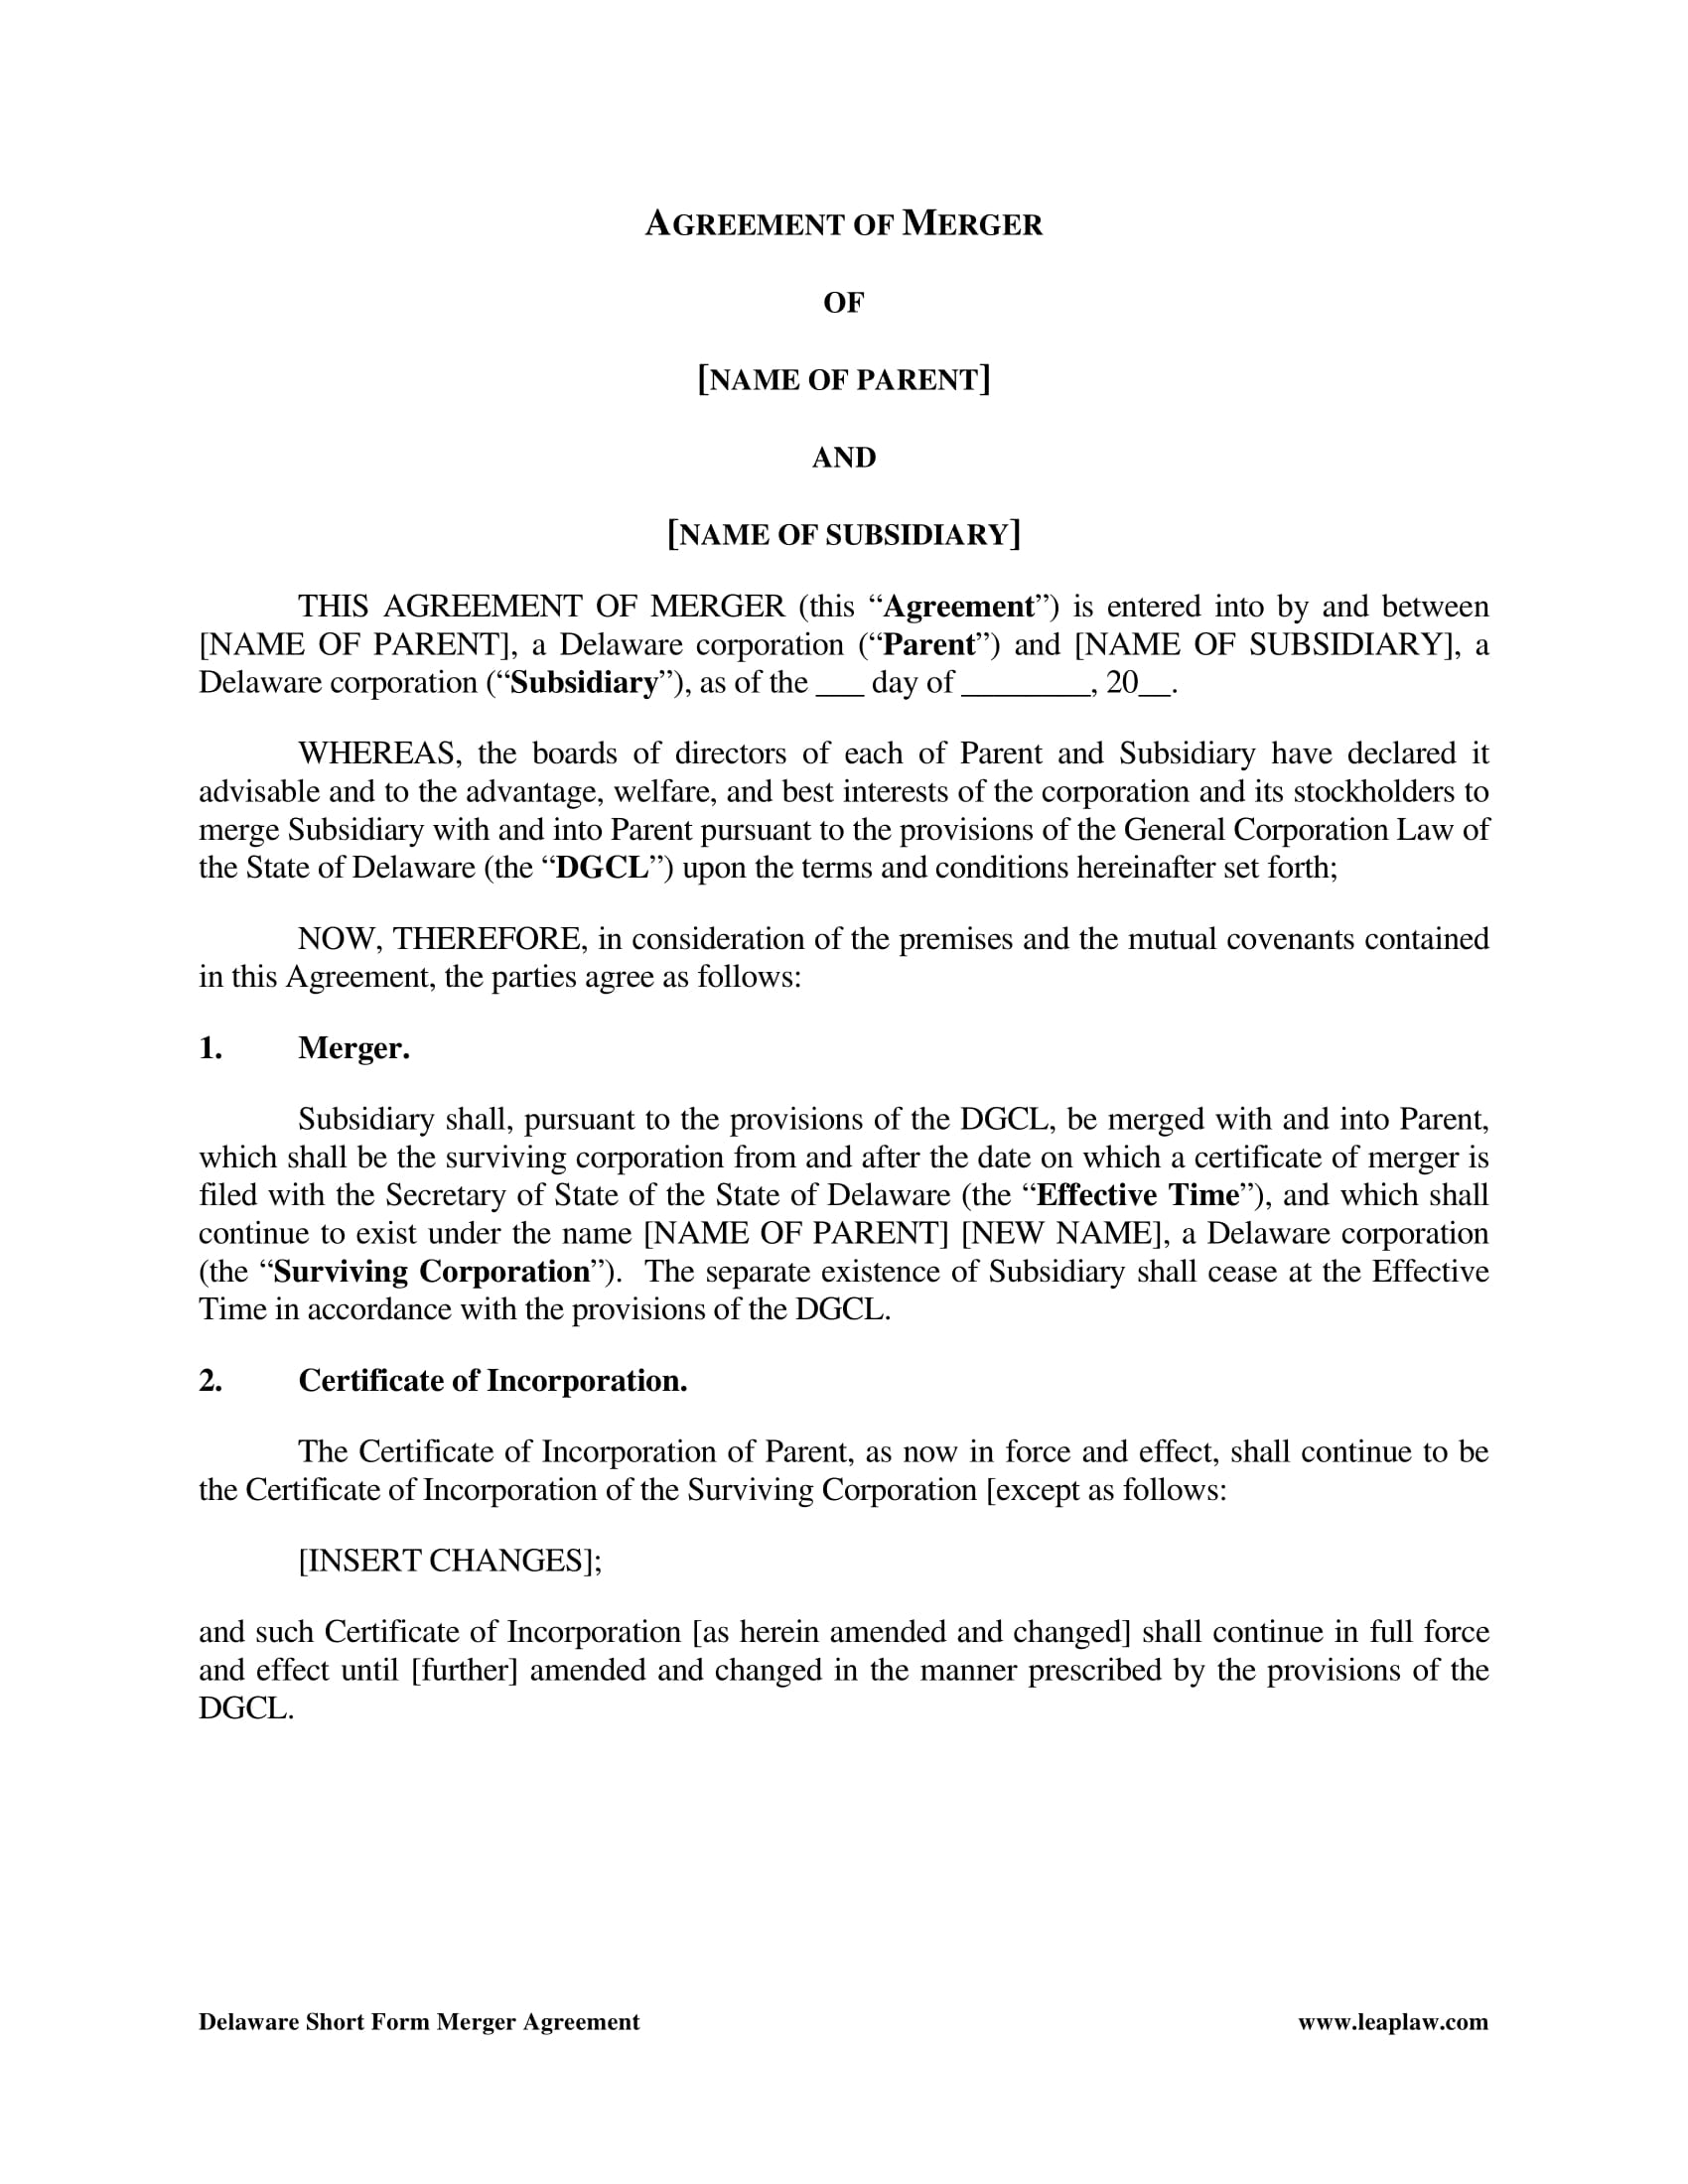 short merger agreement contract form 2